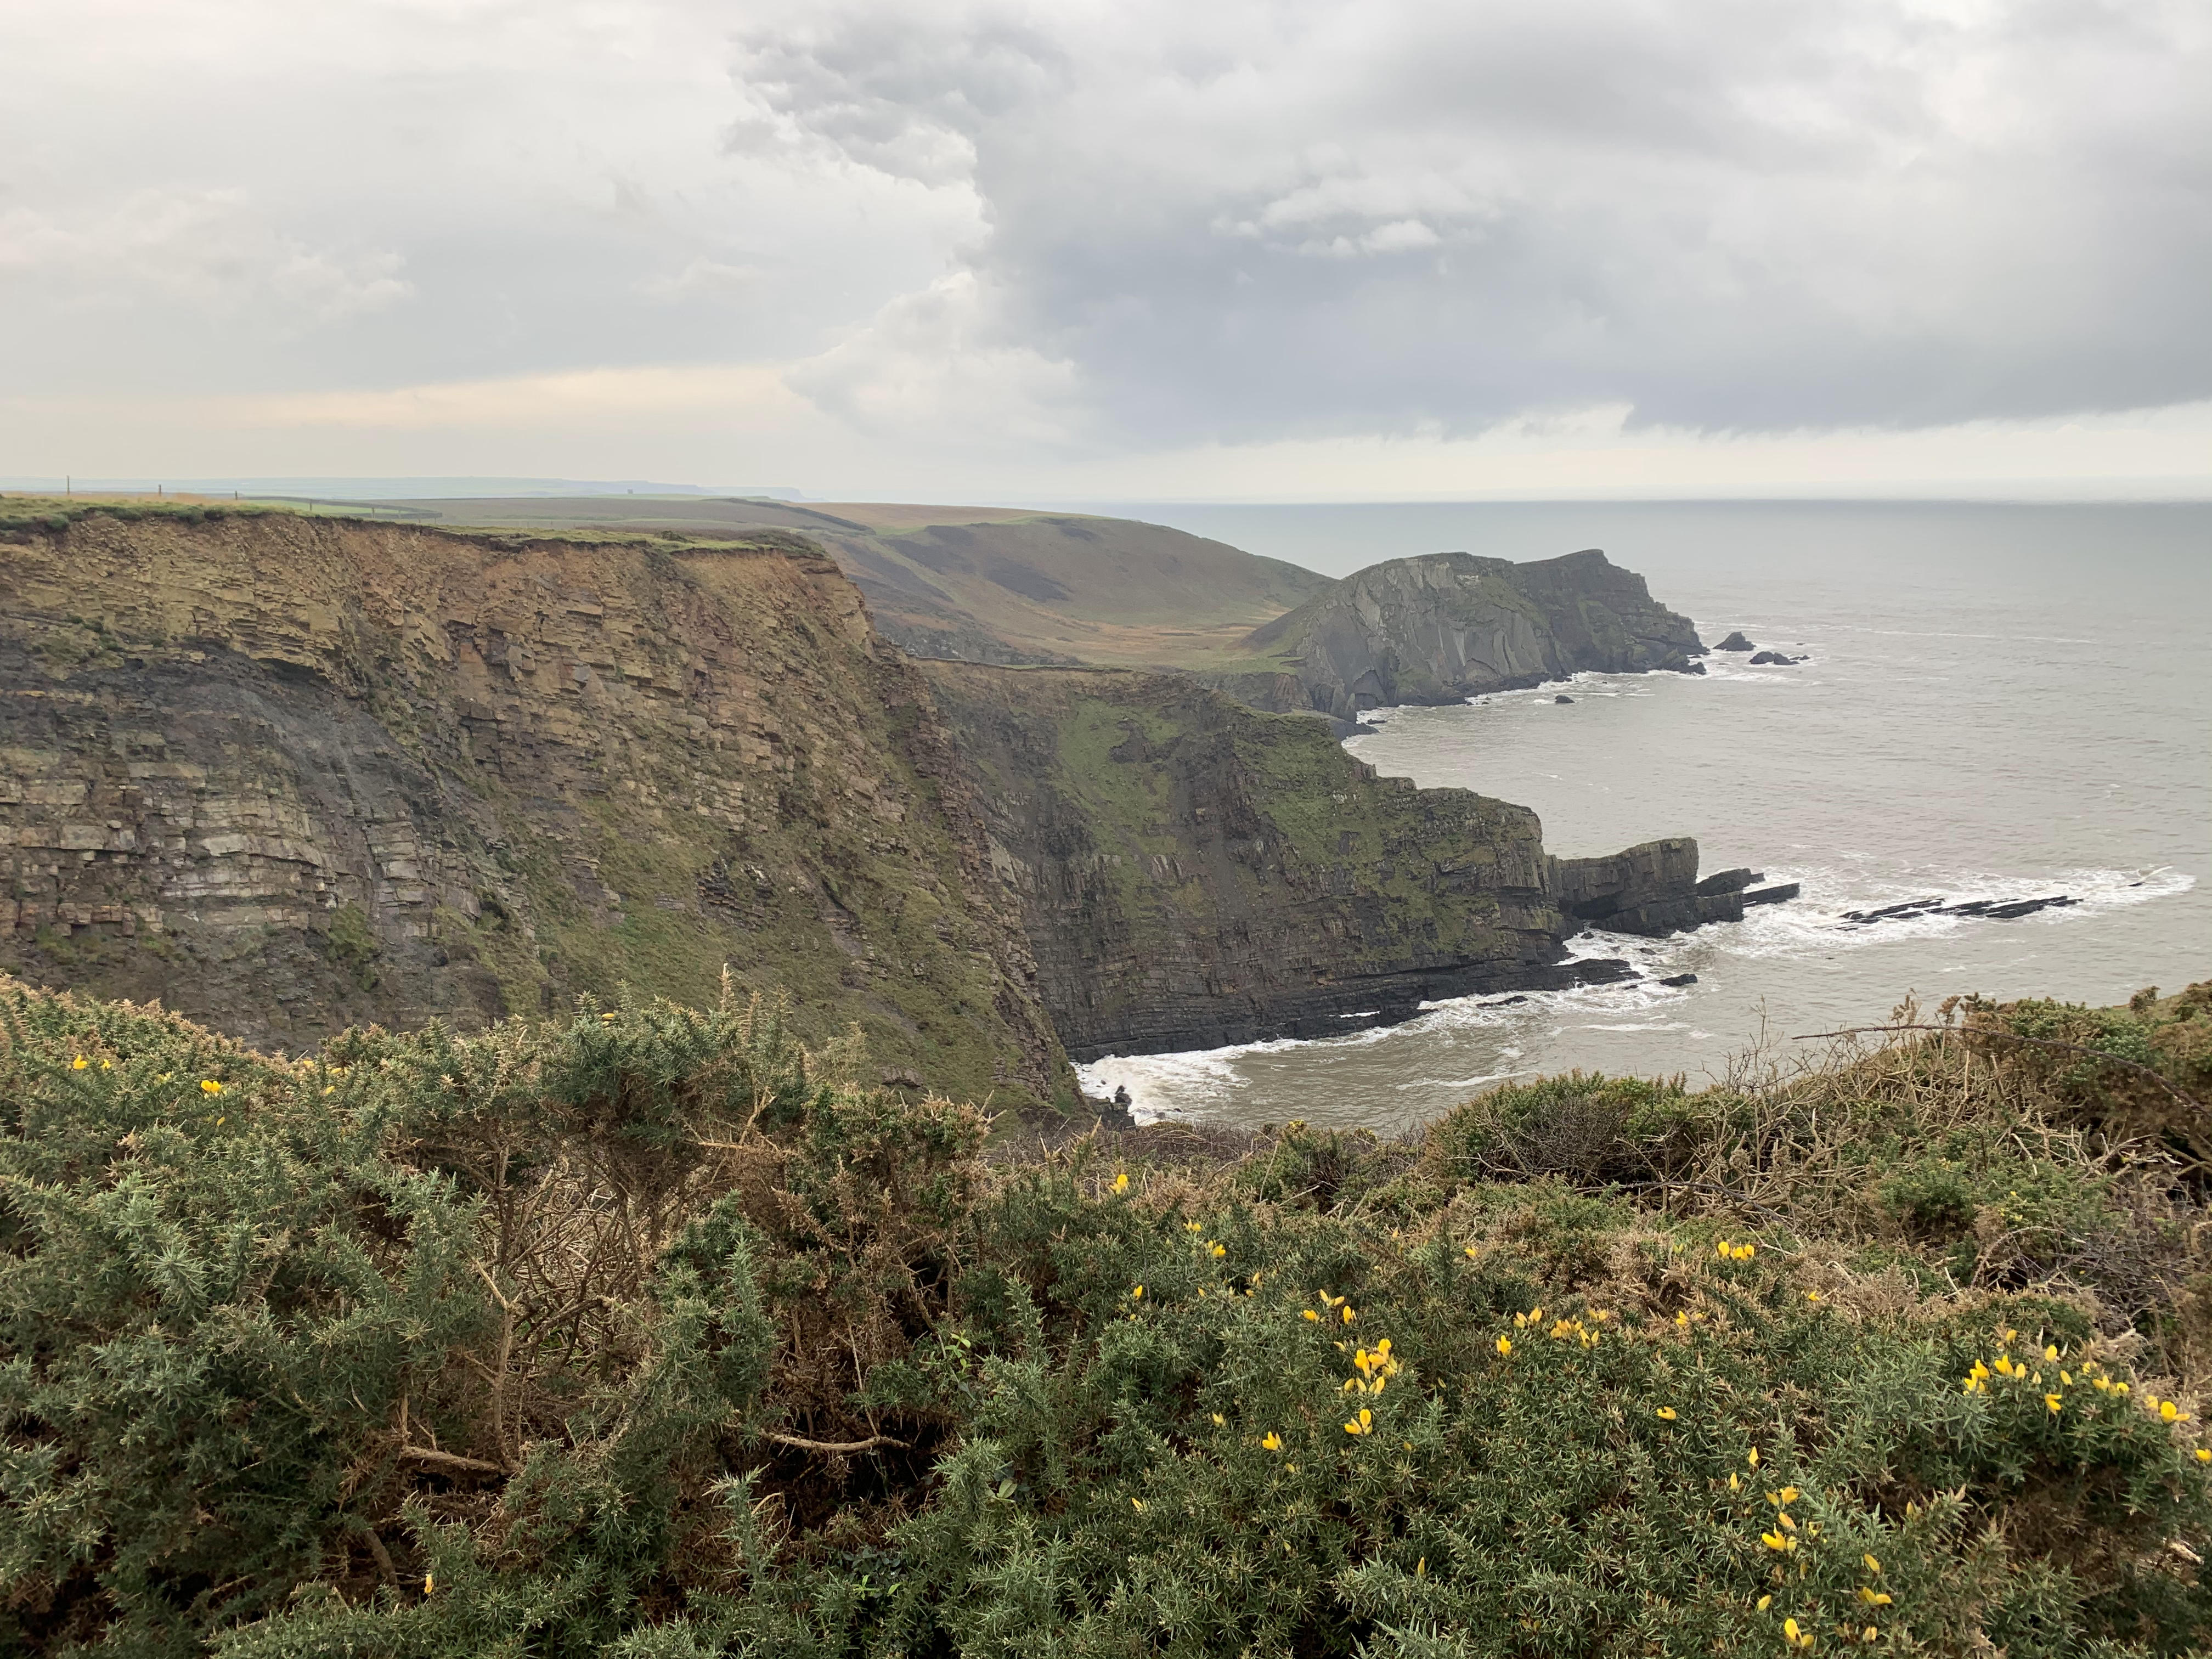 Dramatic views on The South West Coast Path from Clovelly to Hartland Quay